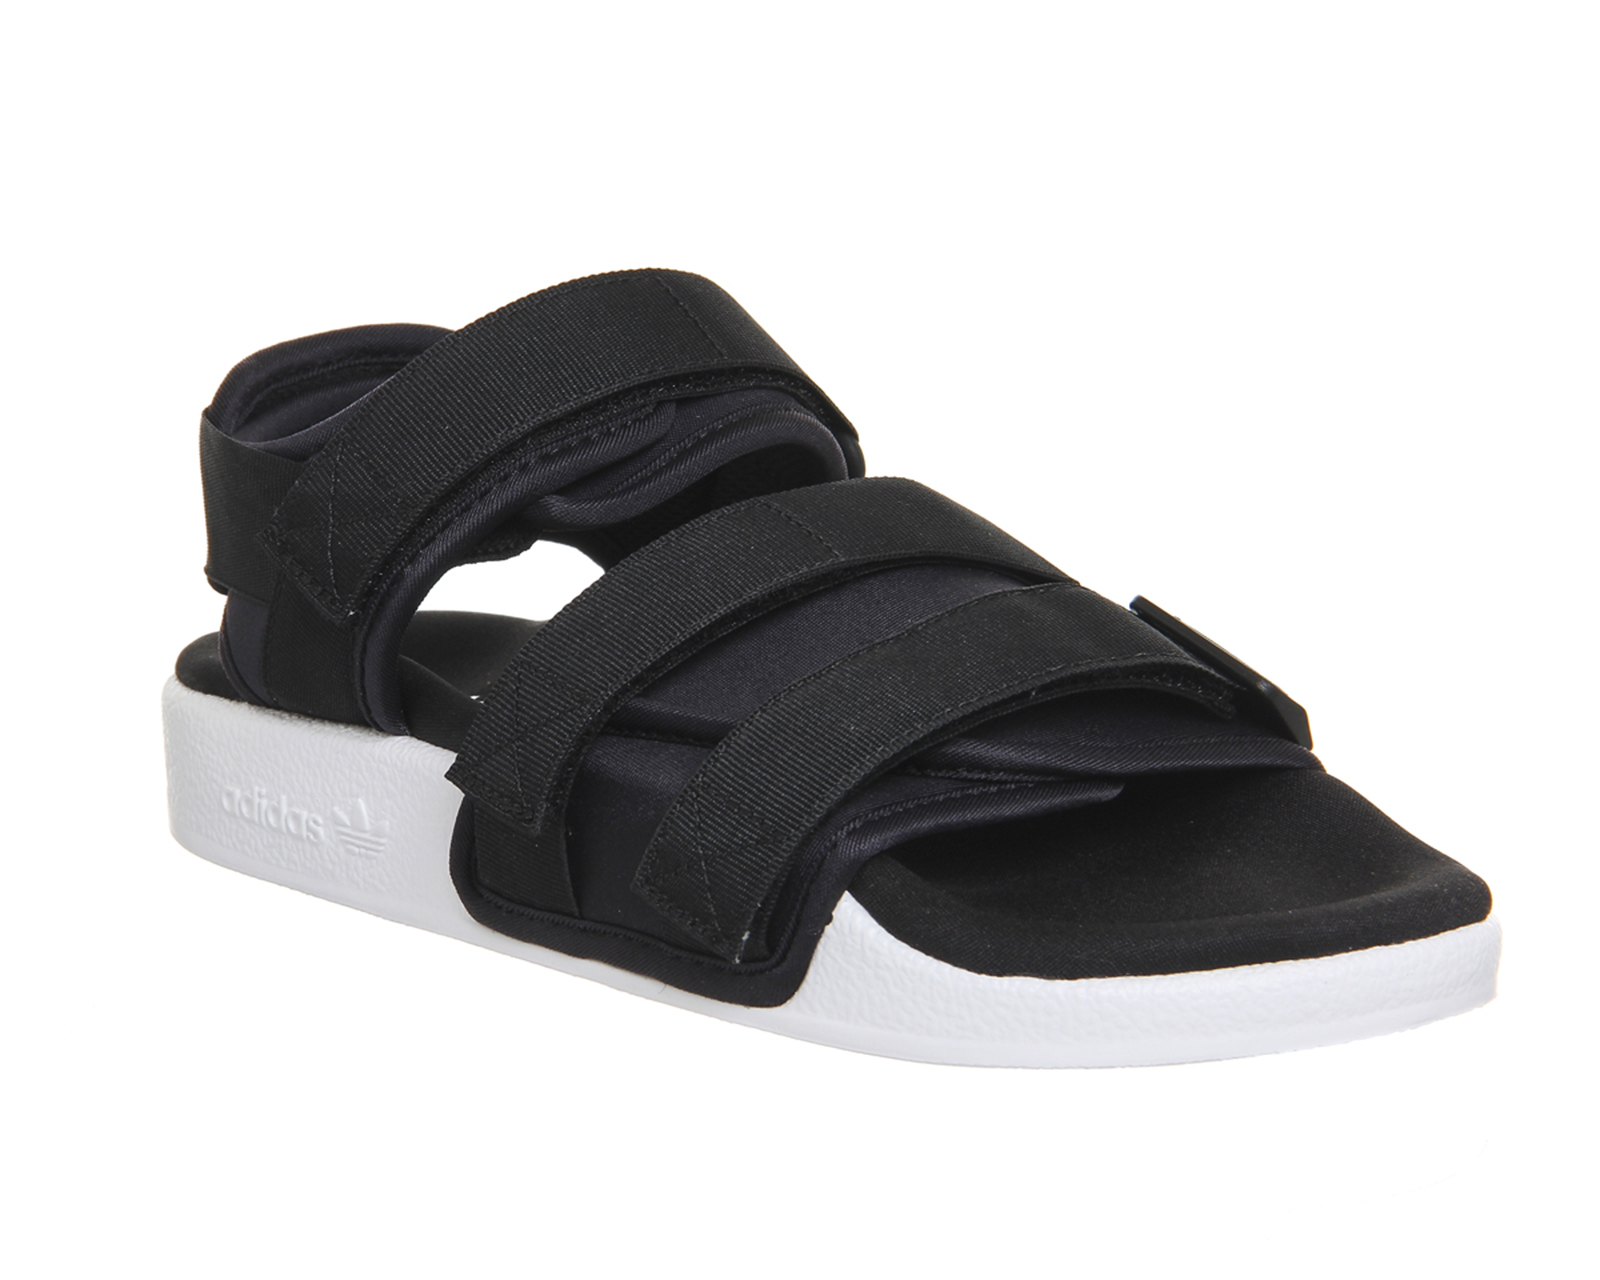 83edbfaad86d Buy adidas originals sandals   OFF58% Discounted